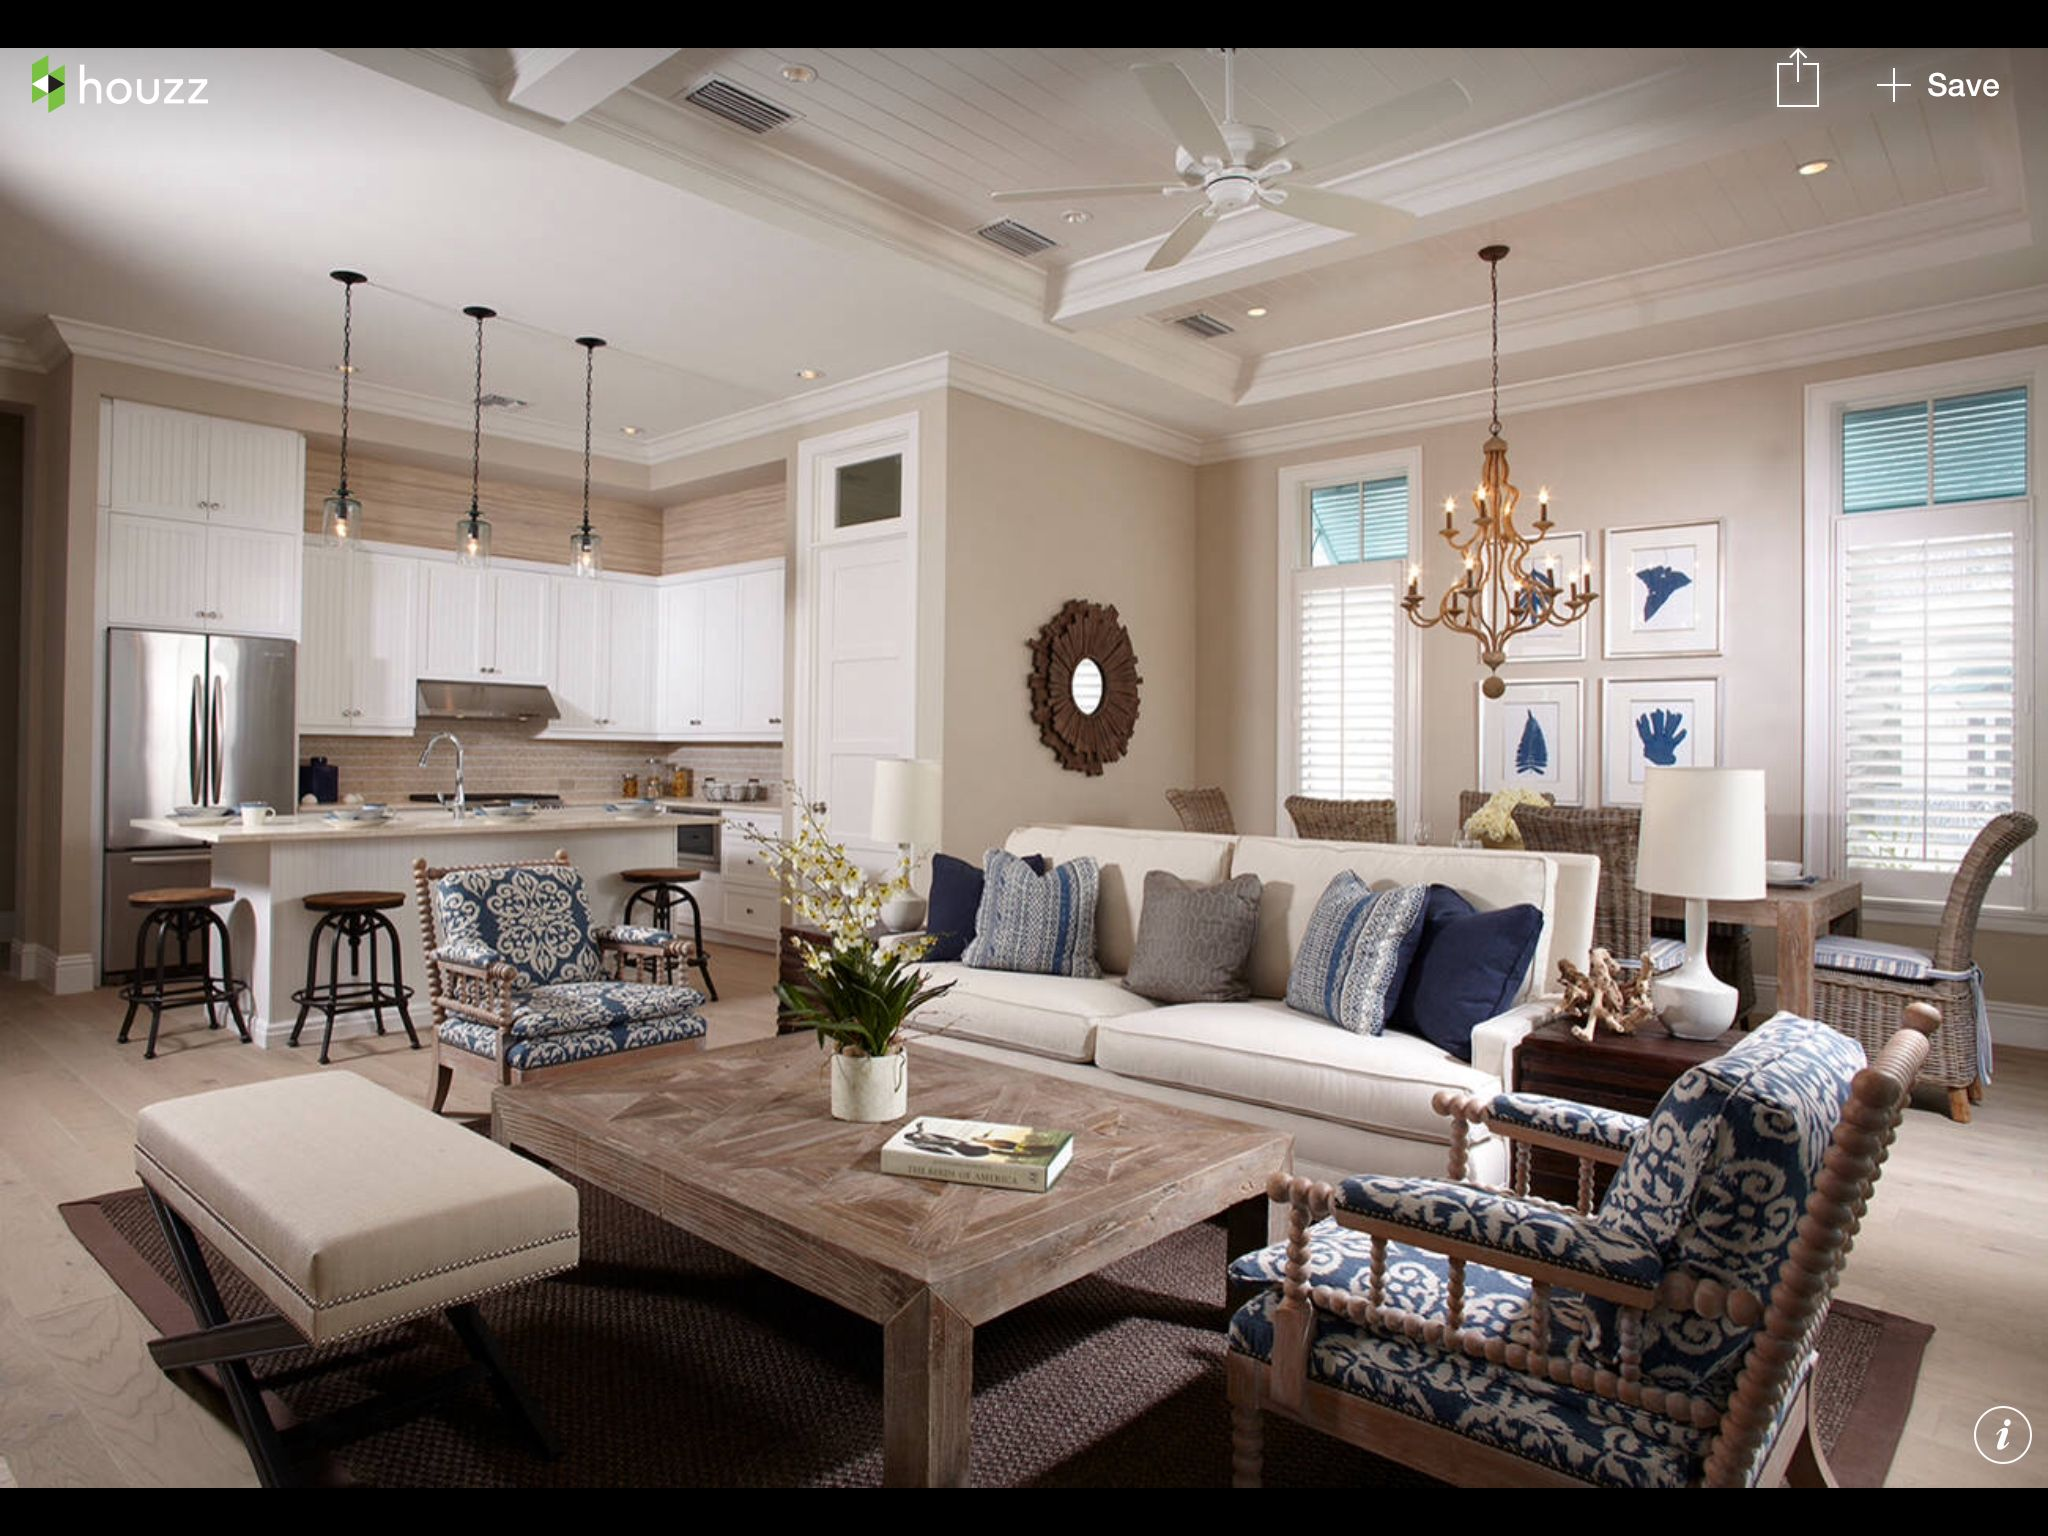 Living Room Design Houzz Awesome Living Room Inspiration From Houzz  House Inspiration  Pinterest Decorating Inspiration